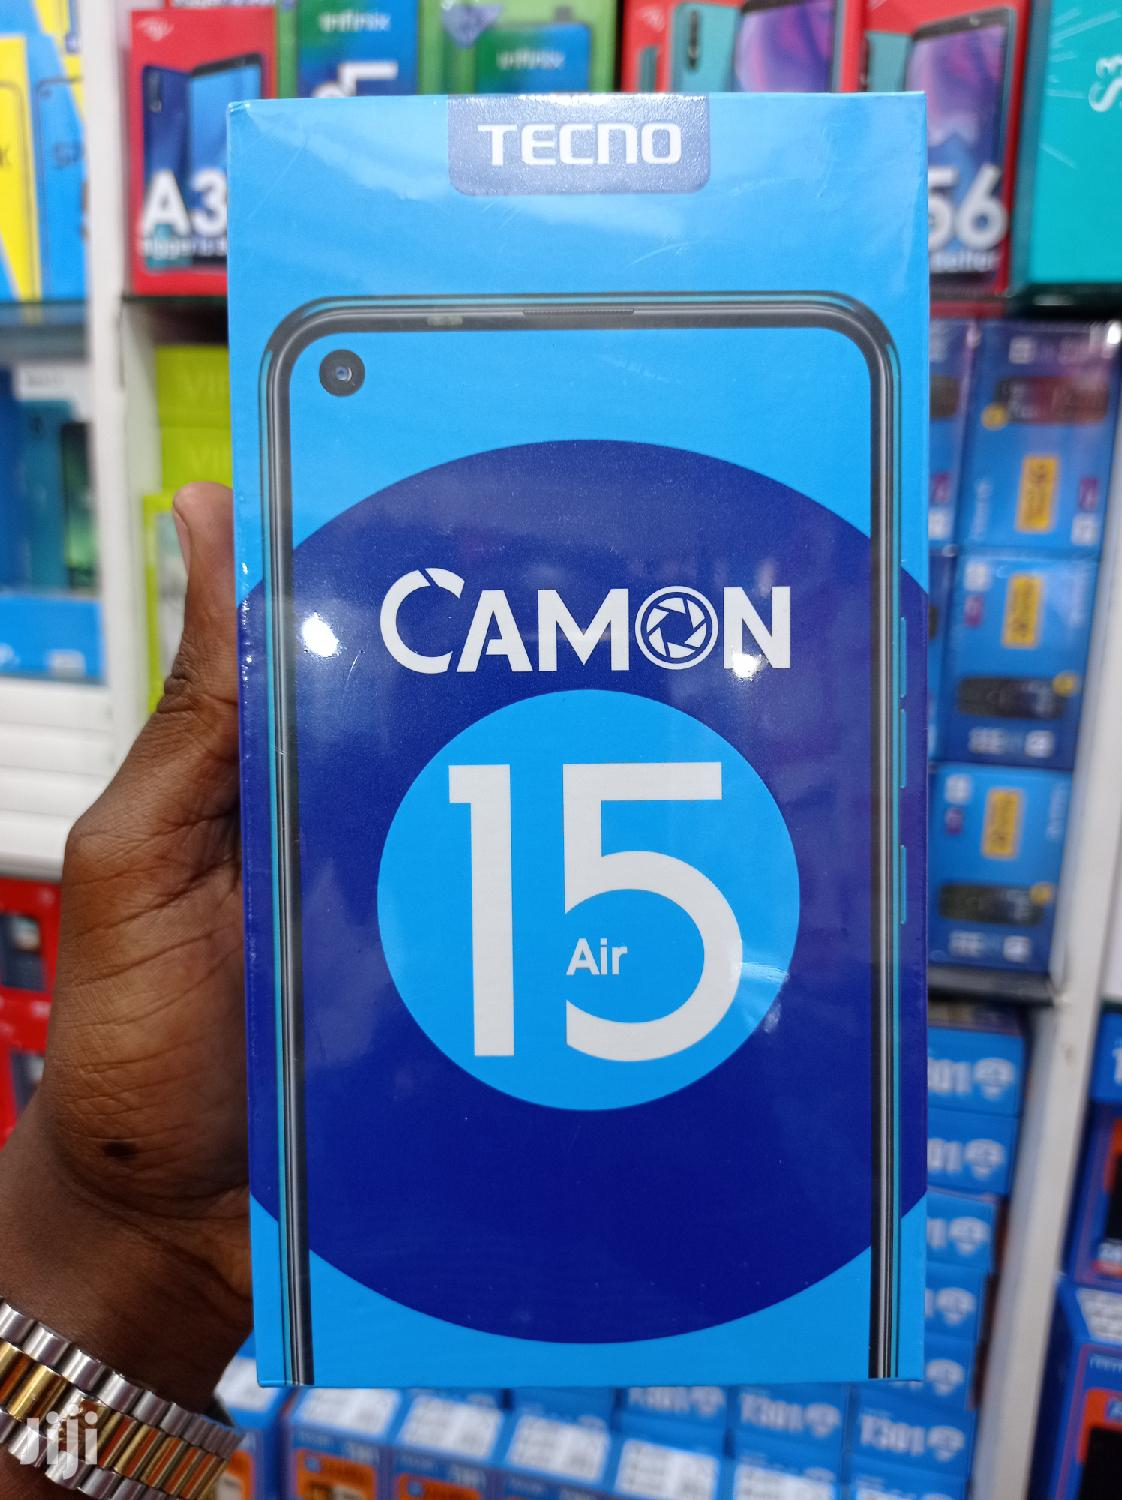 New Tecno Camon 15 Air 64 GB Black